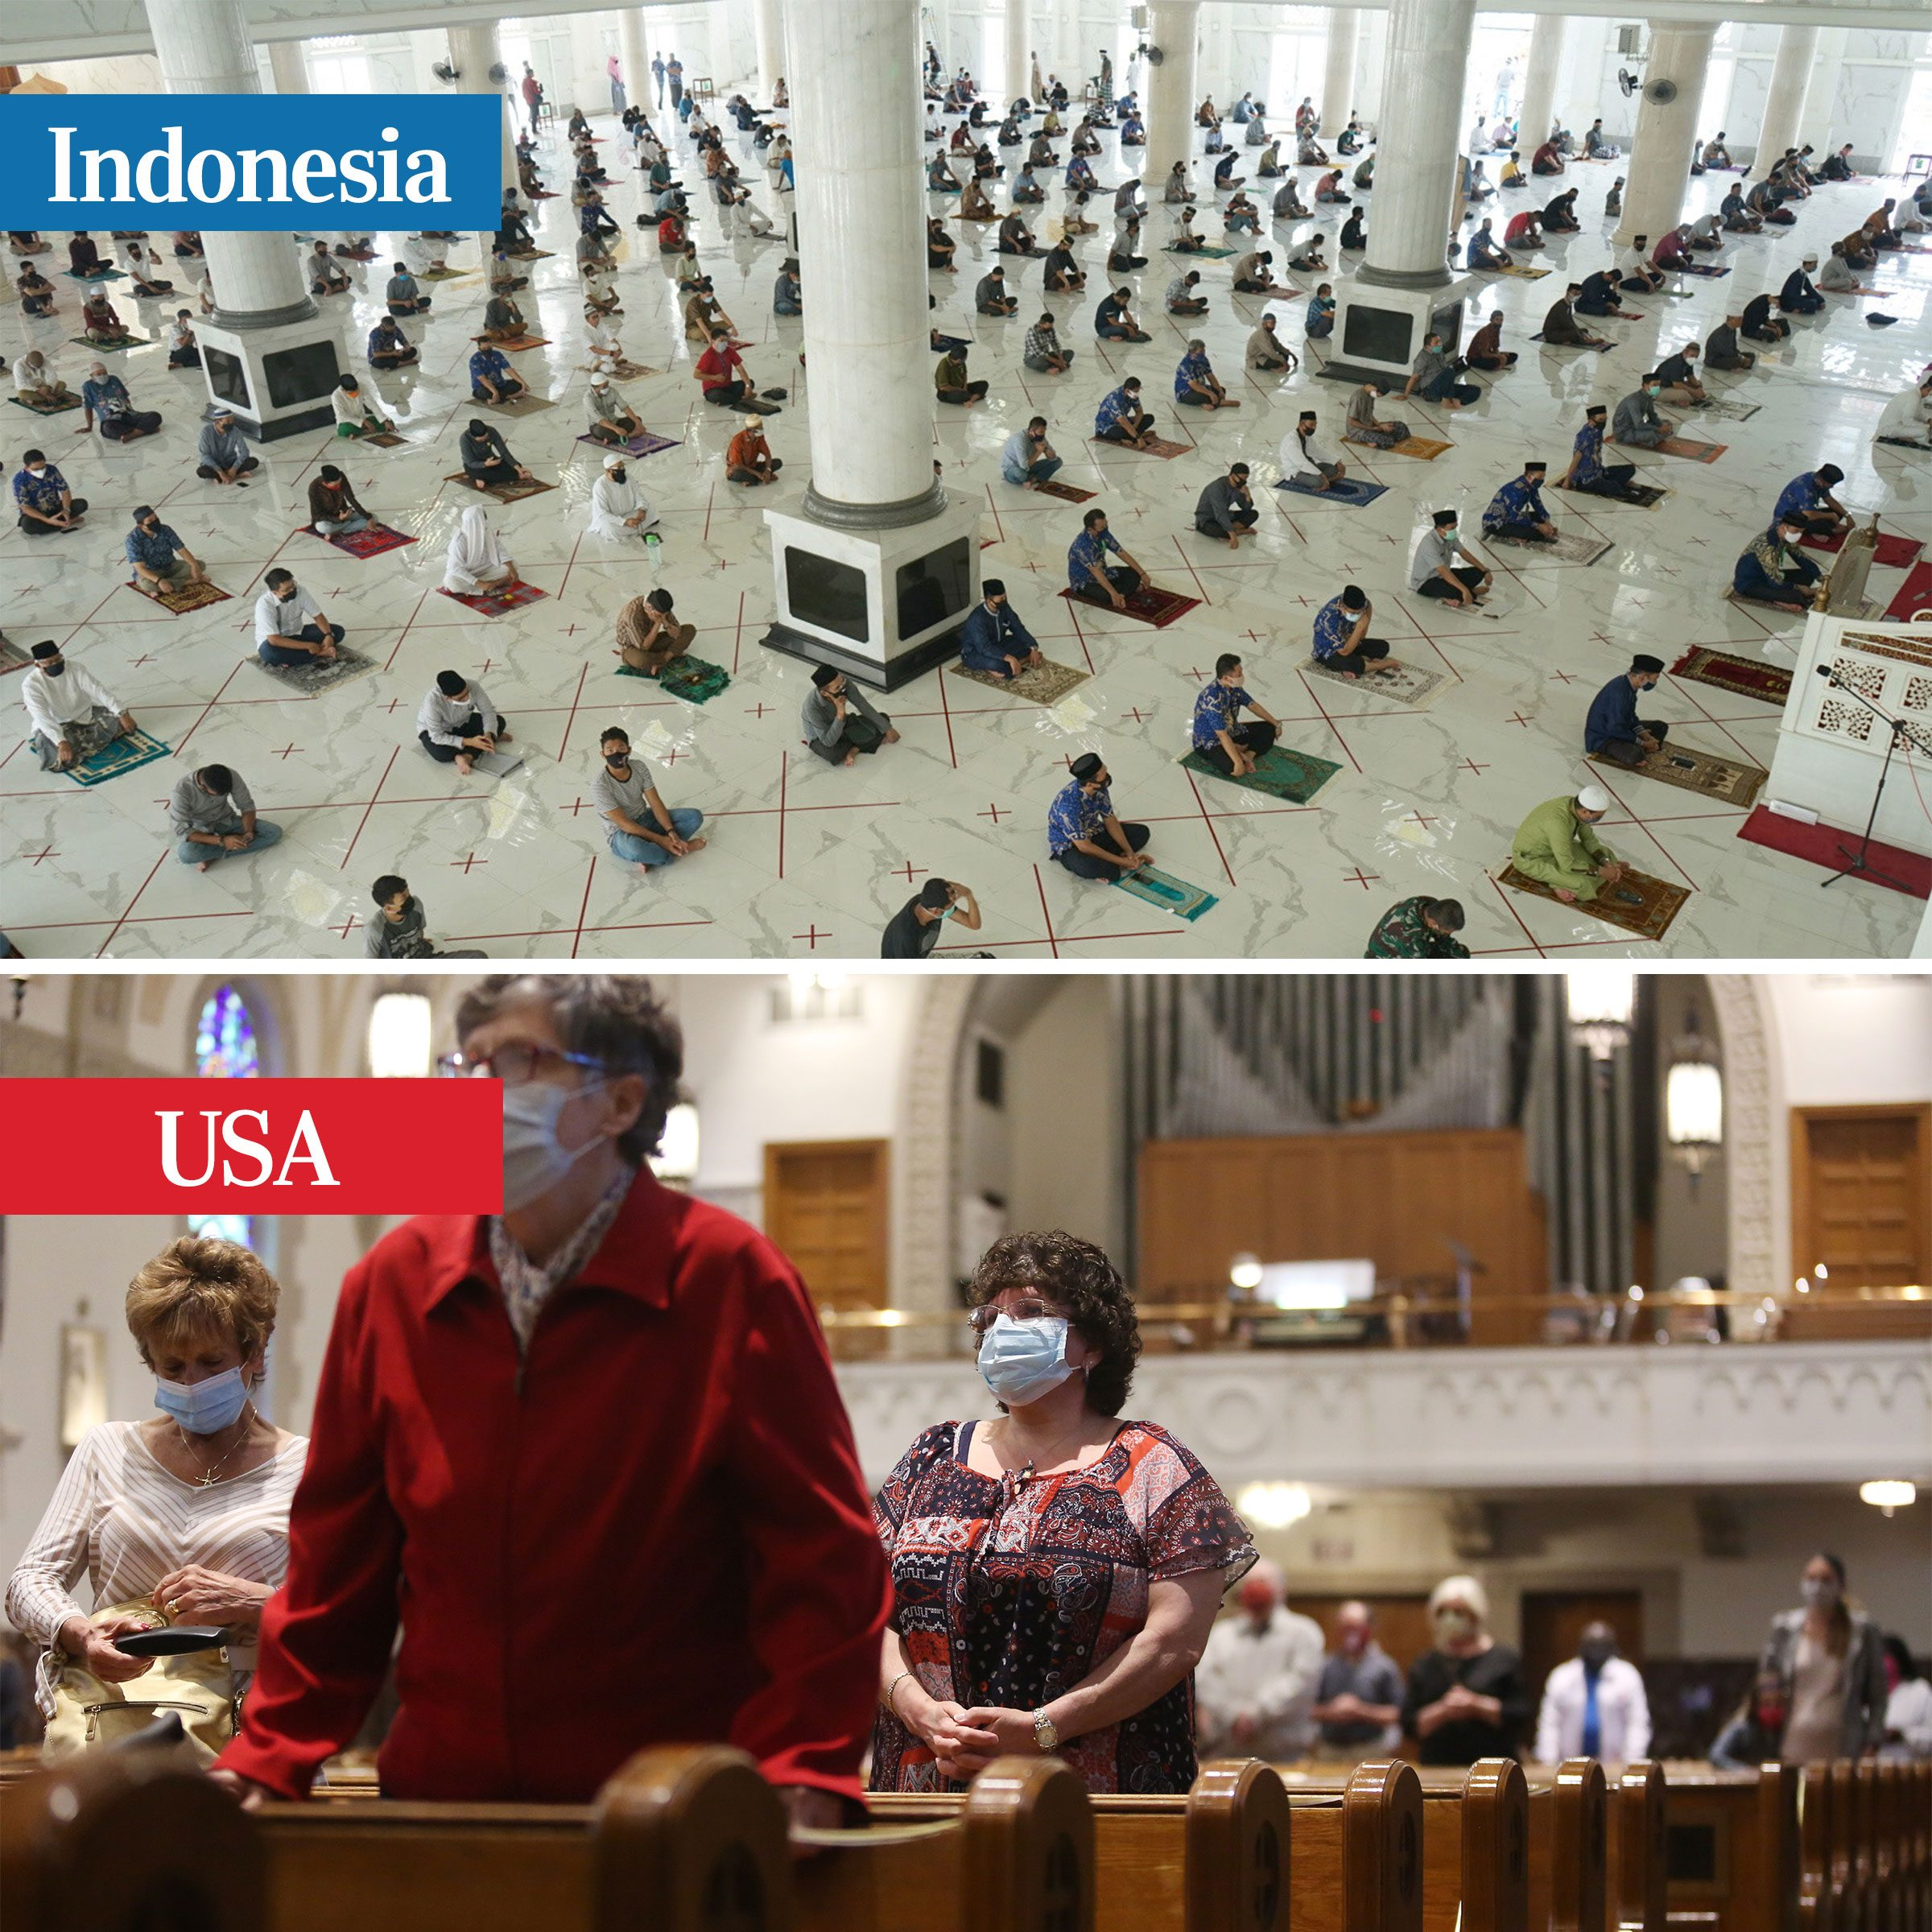 indonesia vs usa - places of worship